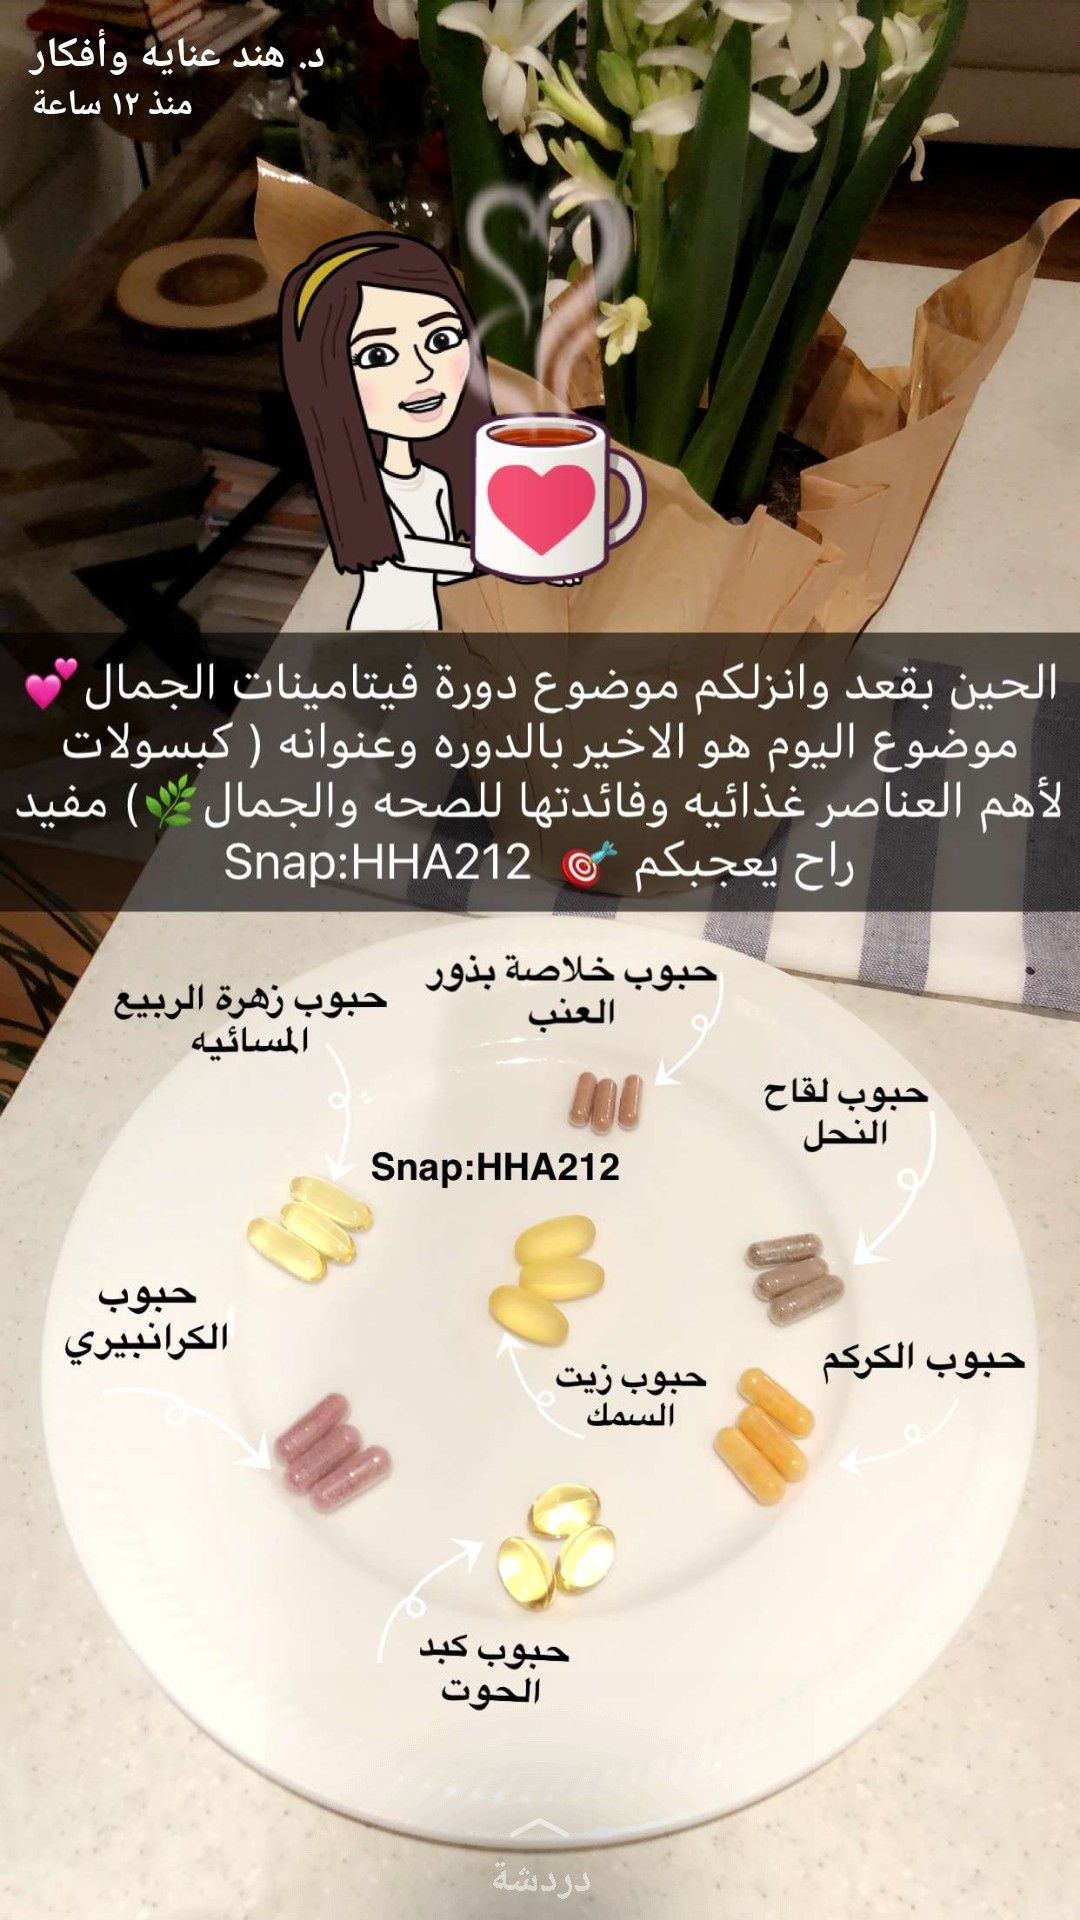 Pin By وهم On د هند عنايه وأفكار Beauty Skin Care Routine Skin Care Routine Steps Health Skin Care